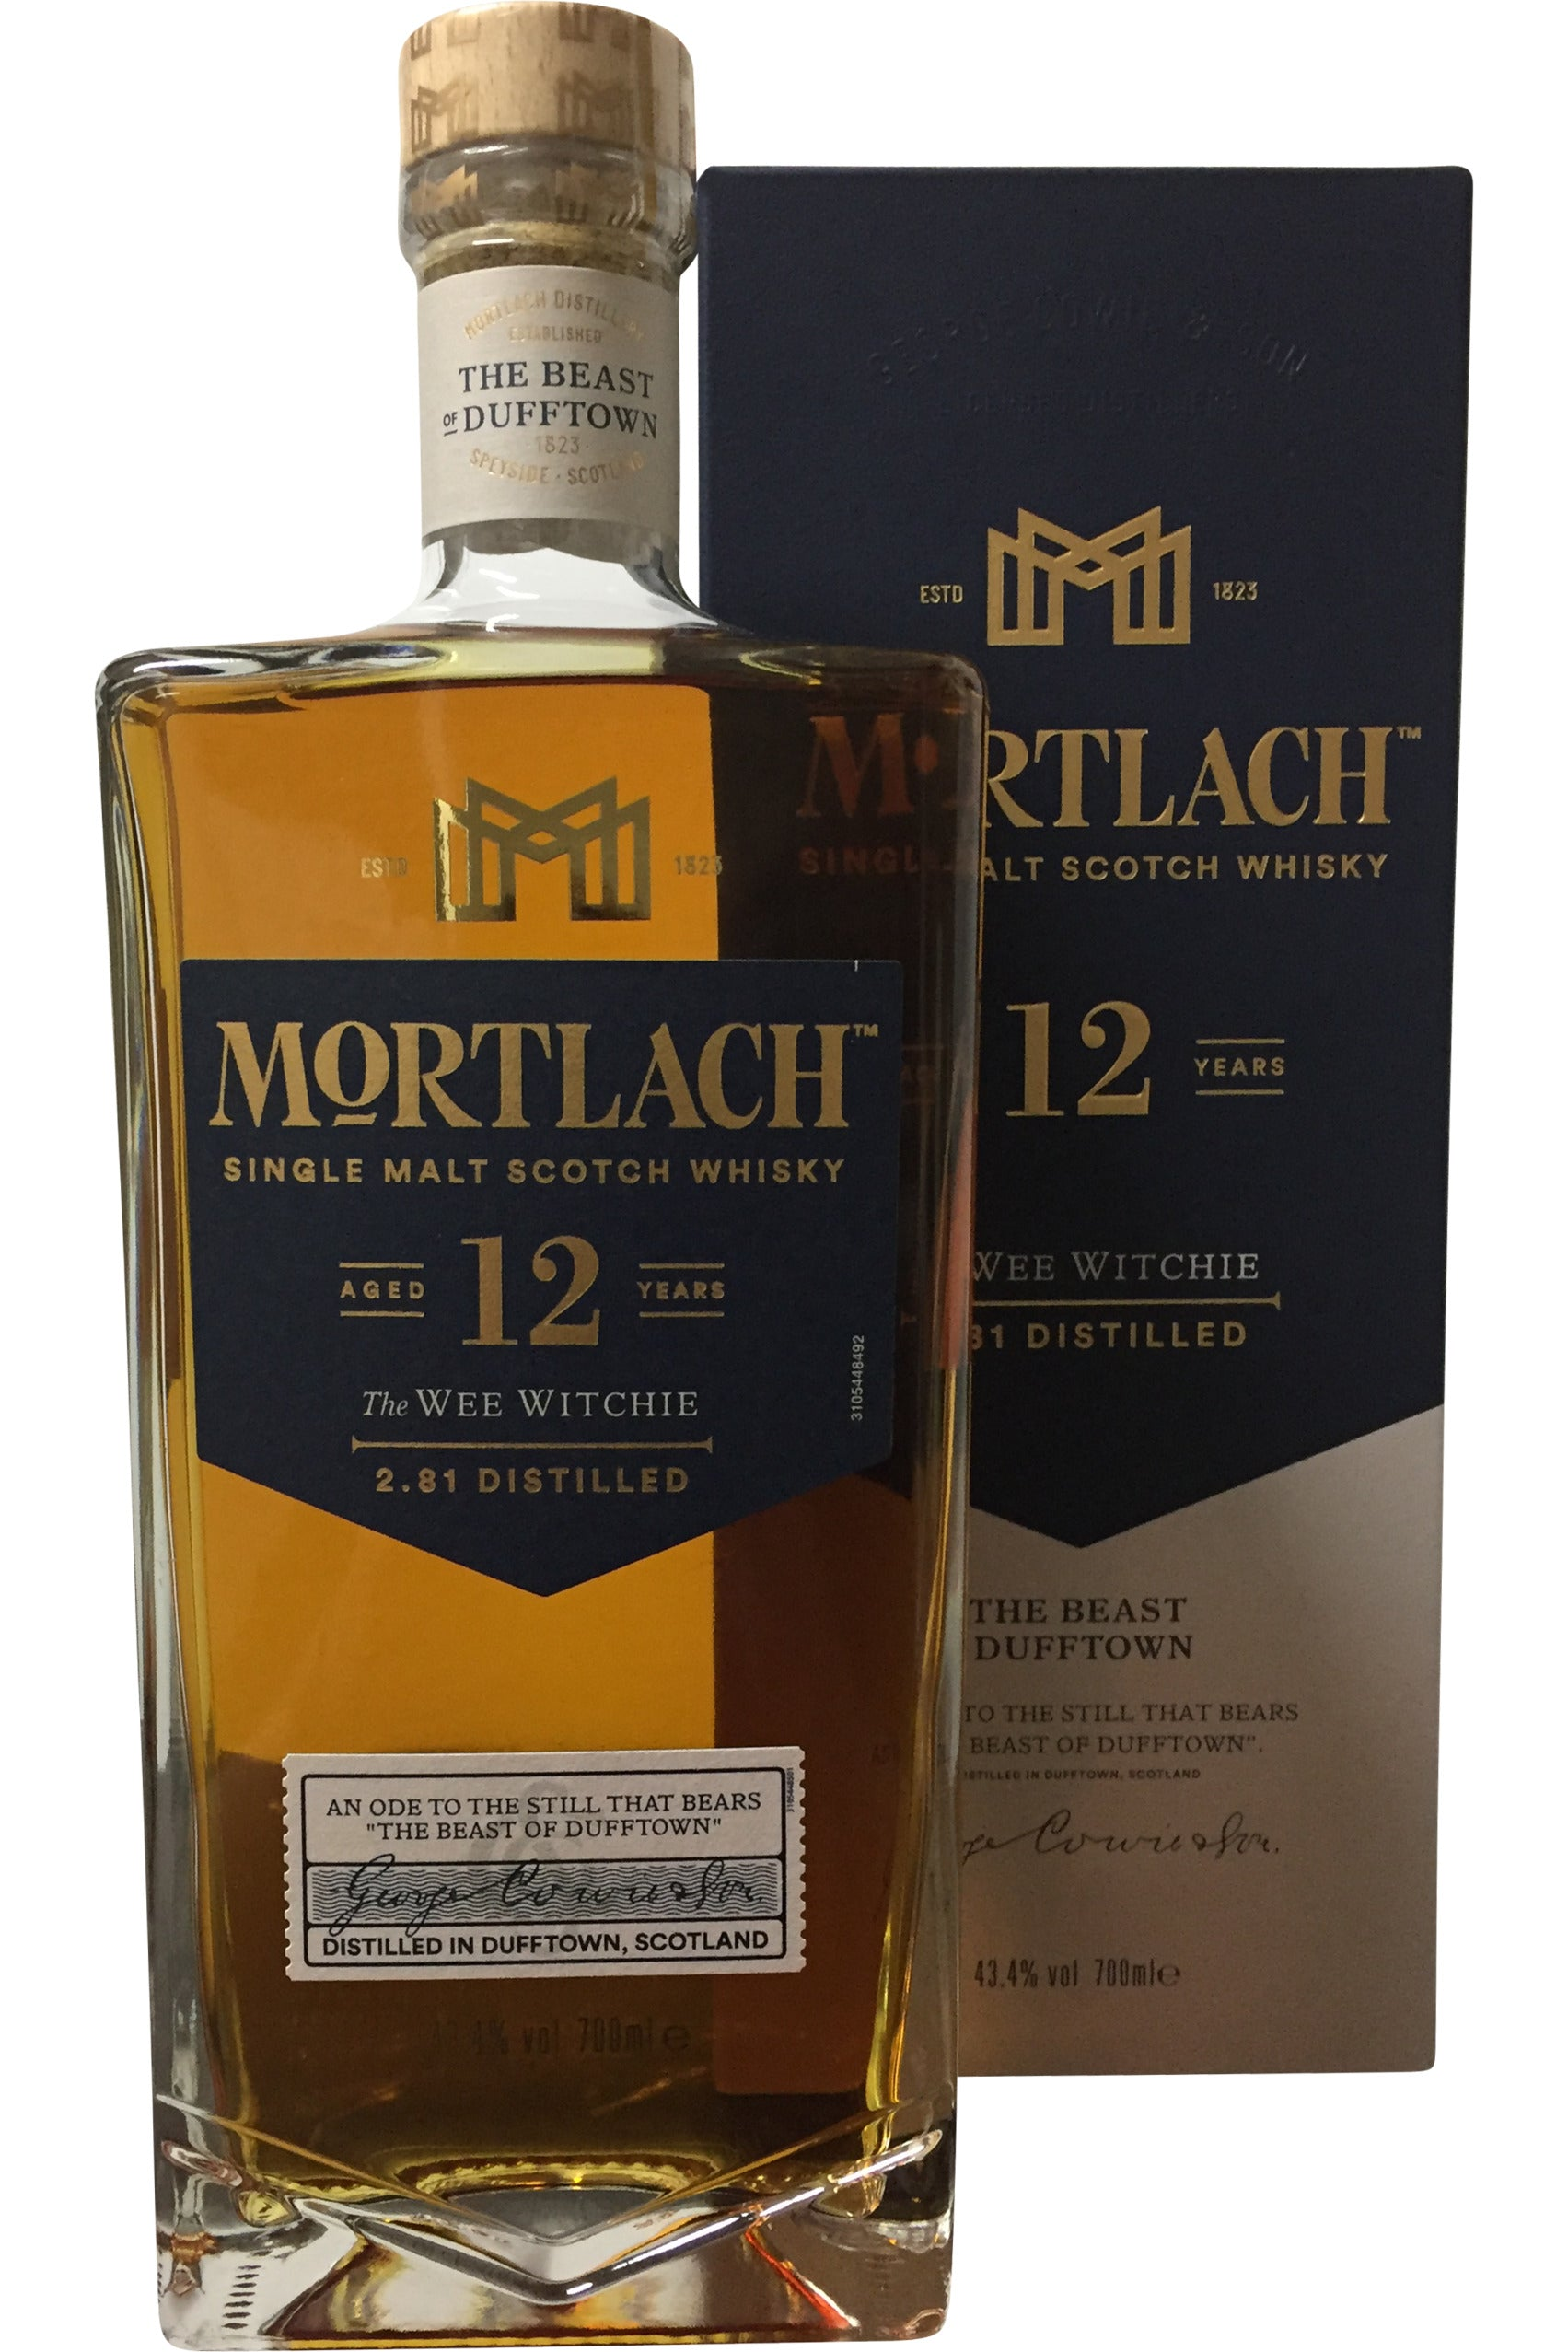 Mortlach 12 Year Old The Wee Witchie - 43.4% 700ml